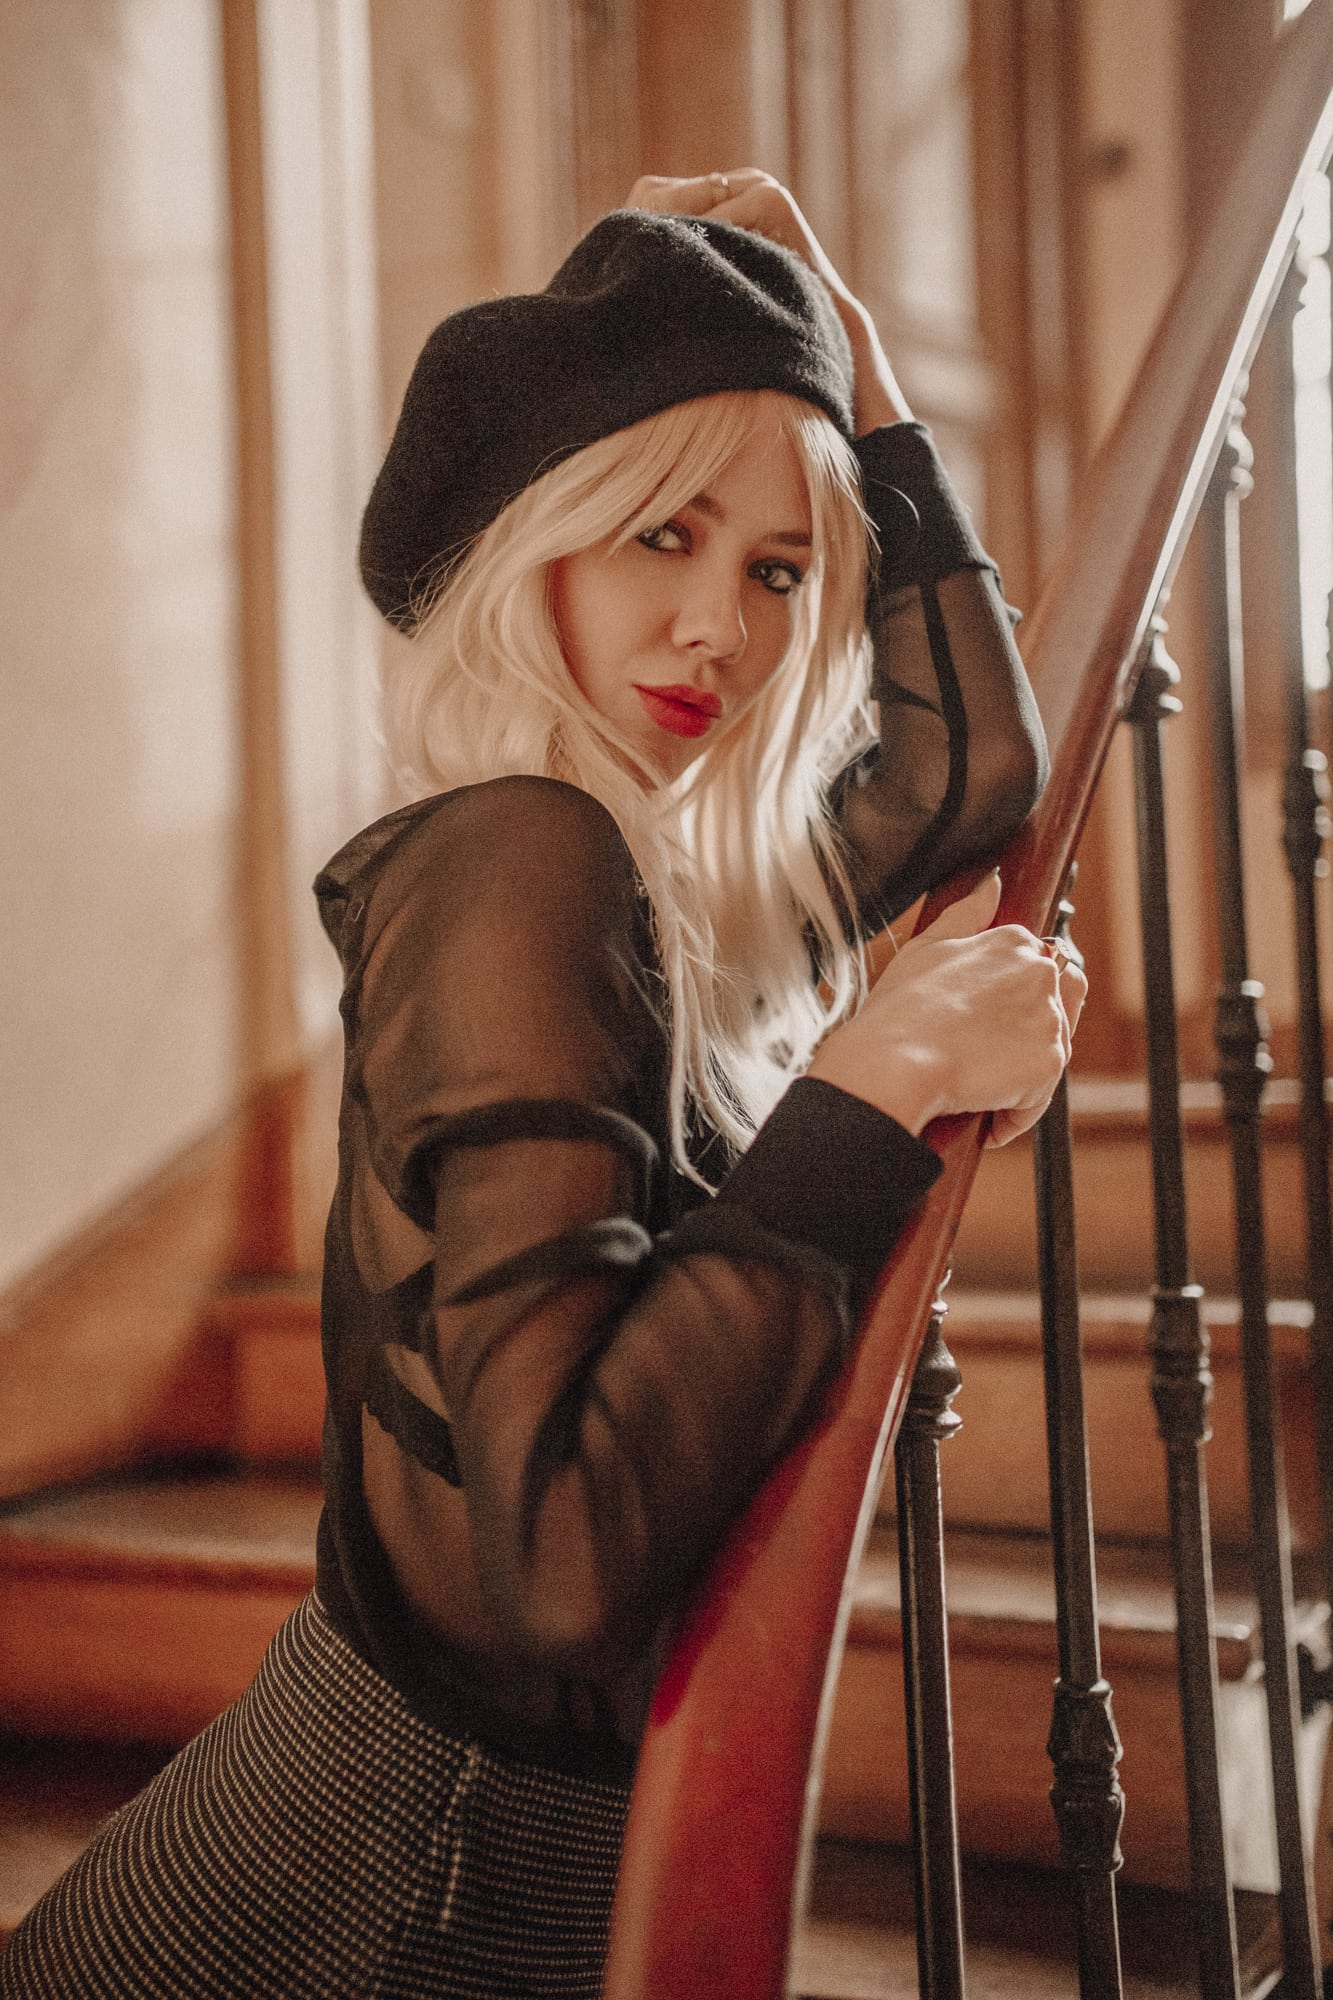 Sarah Loven wears vintage French style on Paris staircase